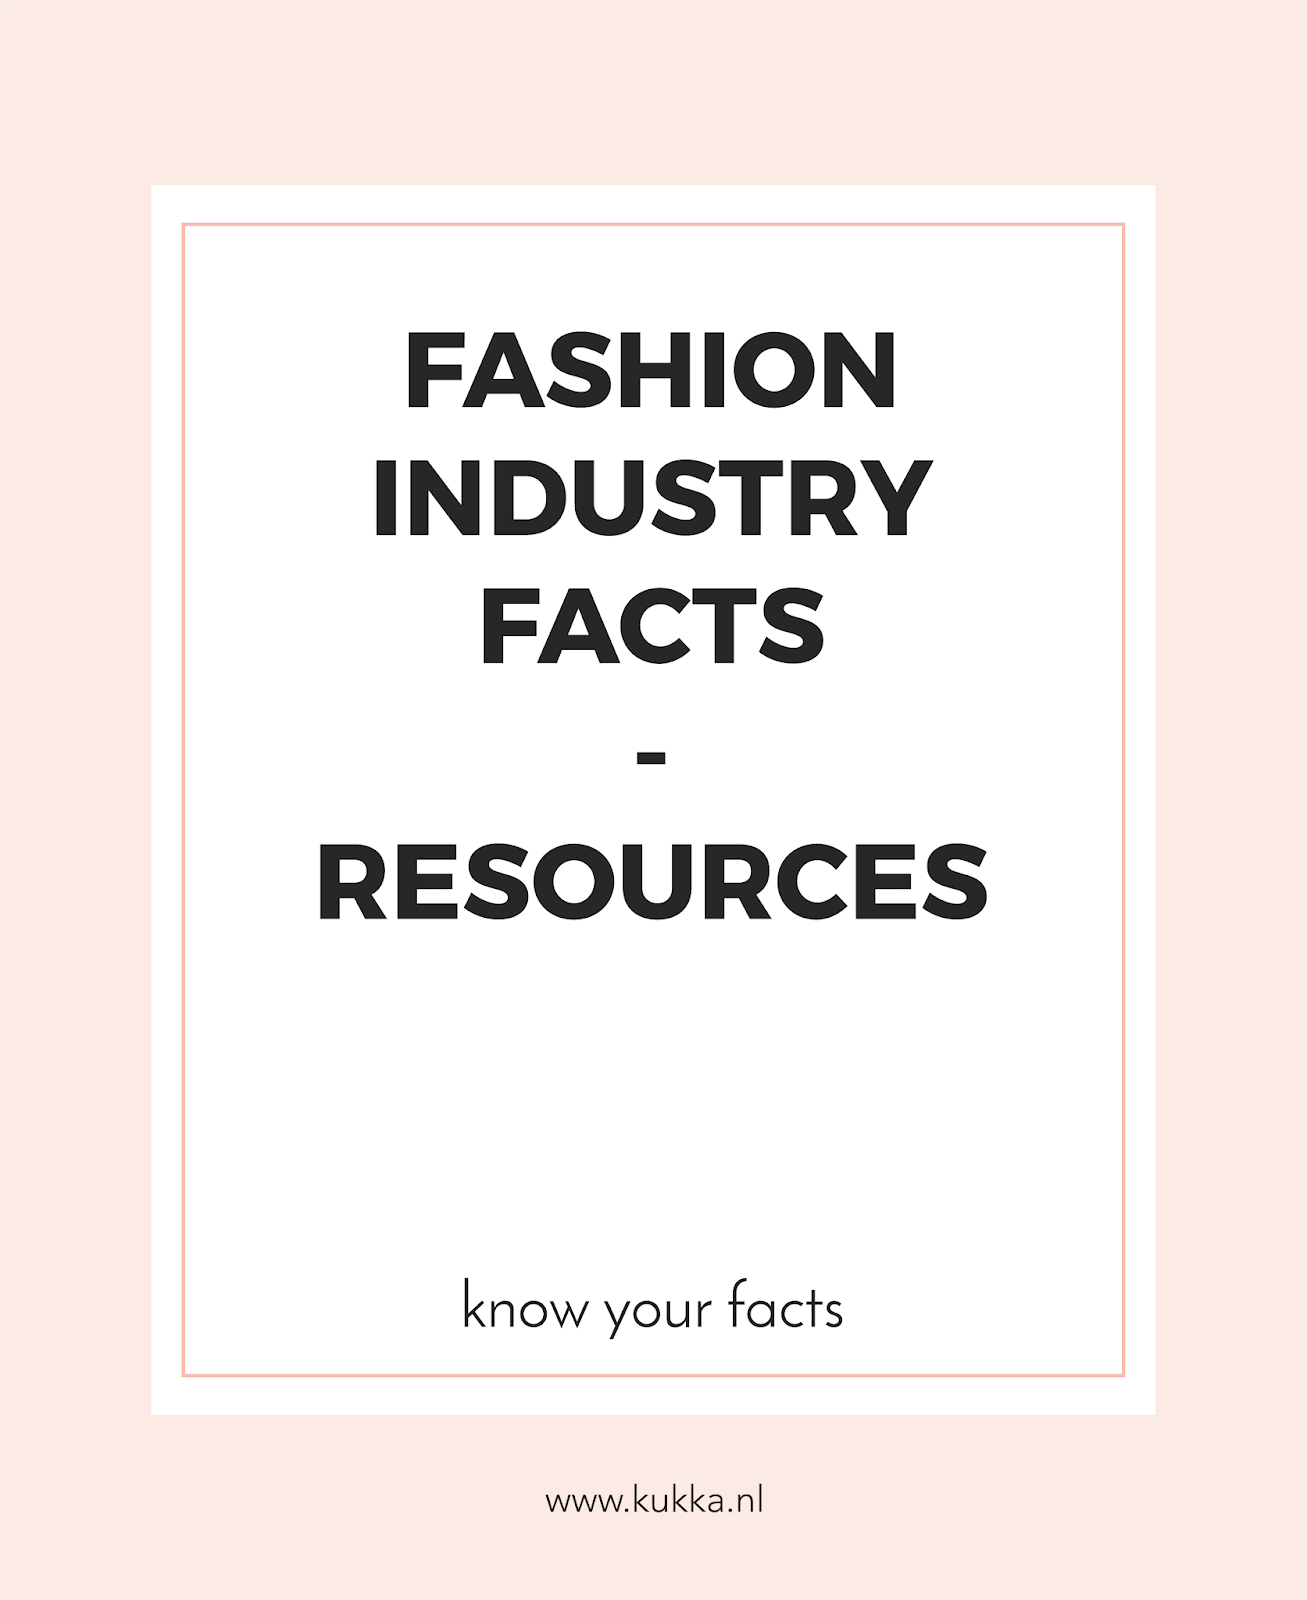 fashion-industry-facts-resources